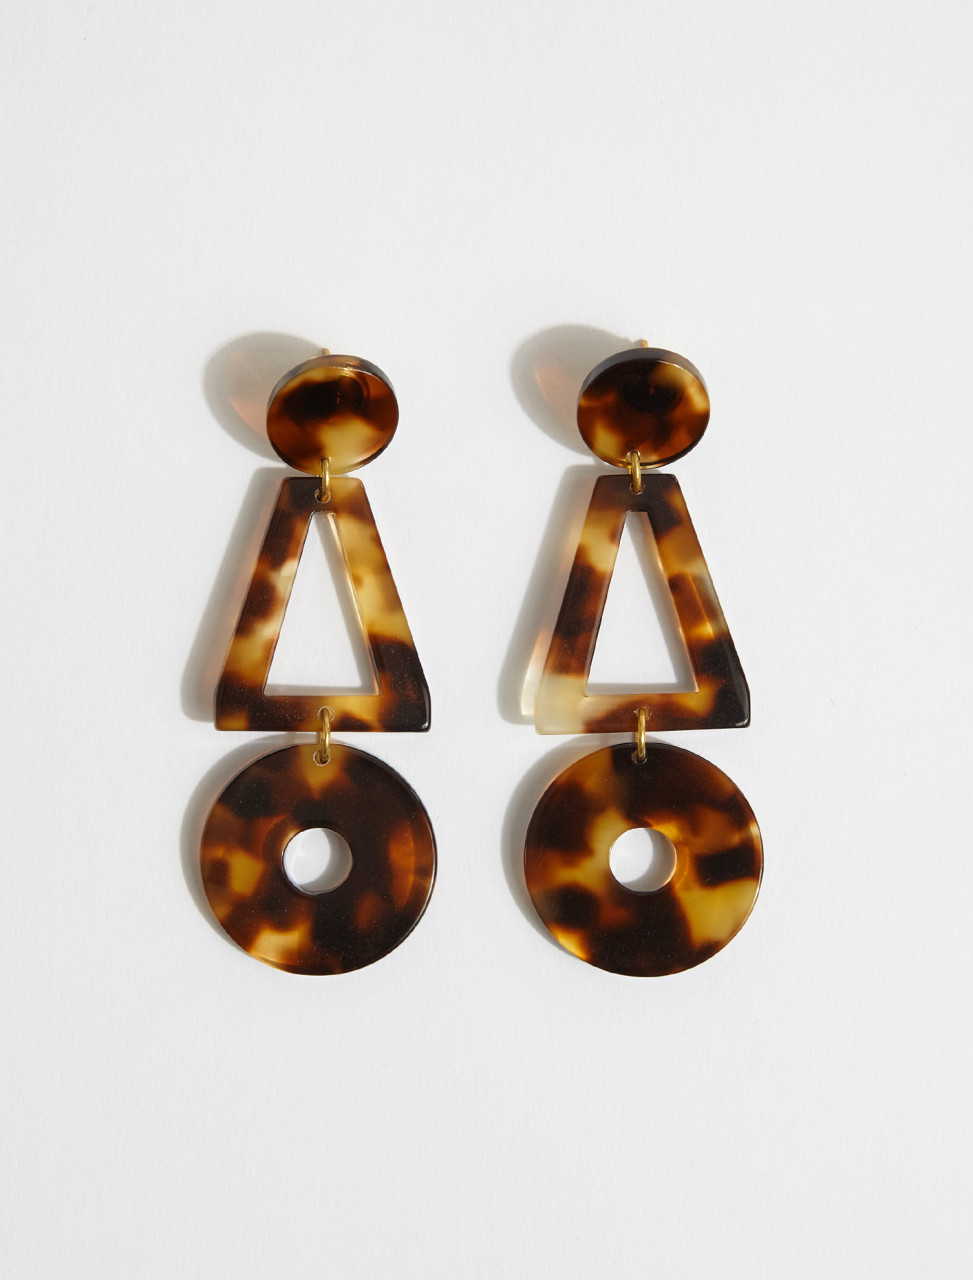 1000730 APRES SKI LIS EARRINGS IN TORTOISE